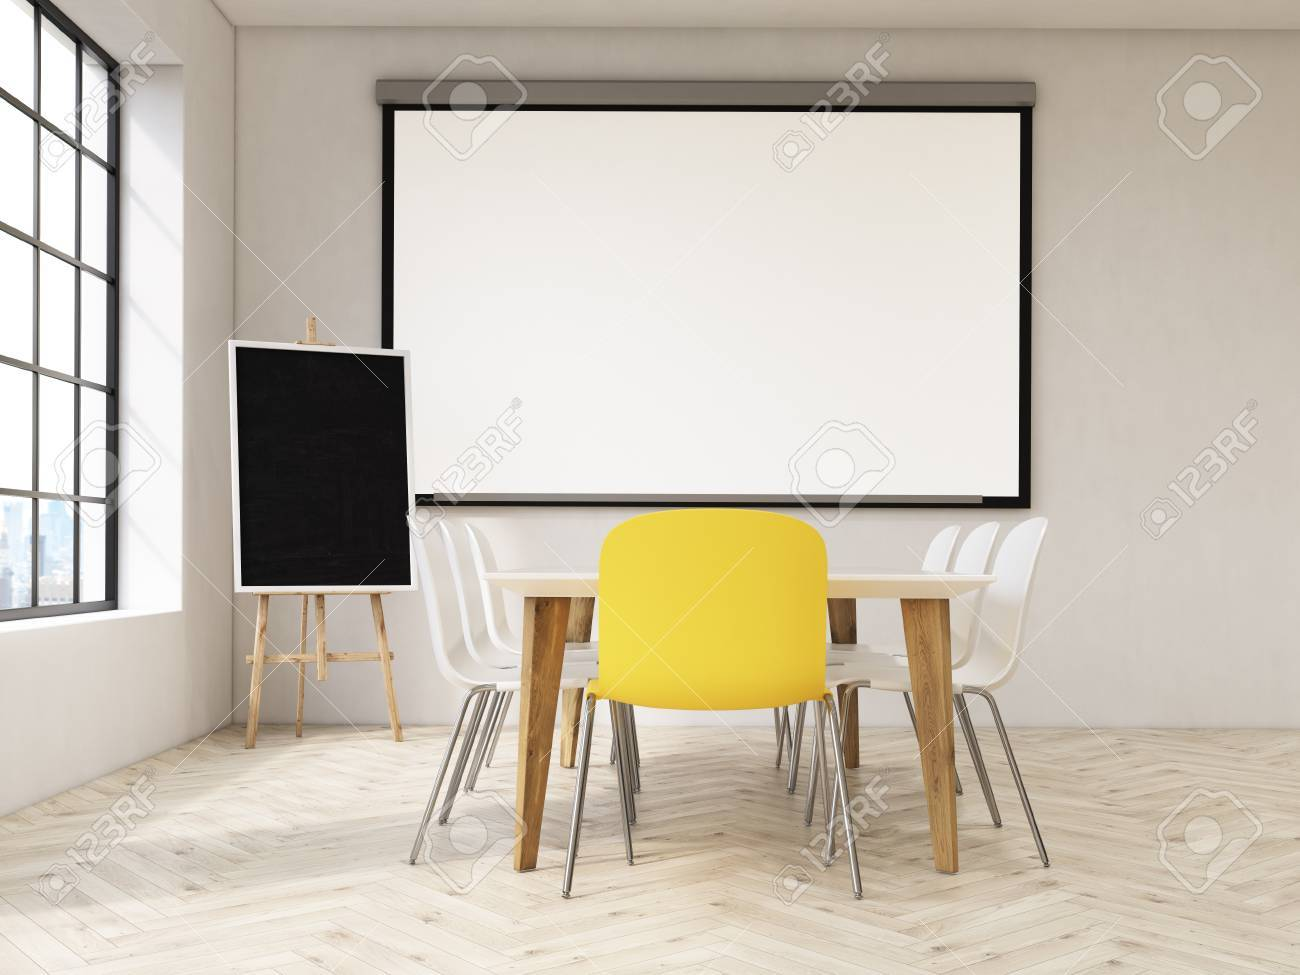 Interior Design With Blank Whiteboard On Wall Blackboard Stand Table And Chairs Concrete